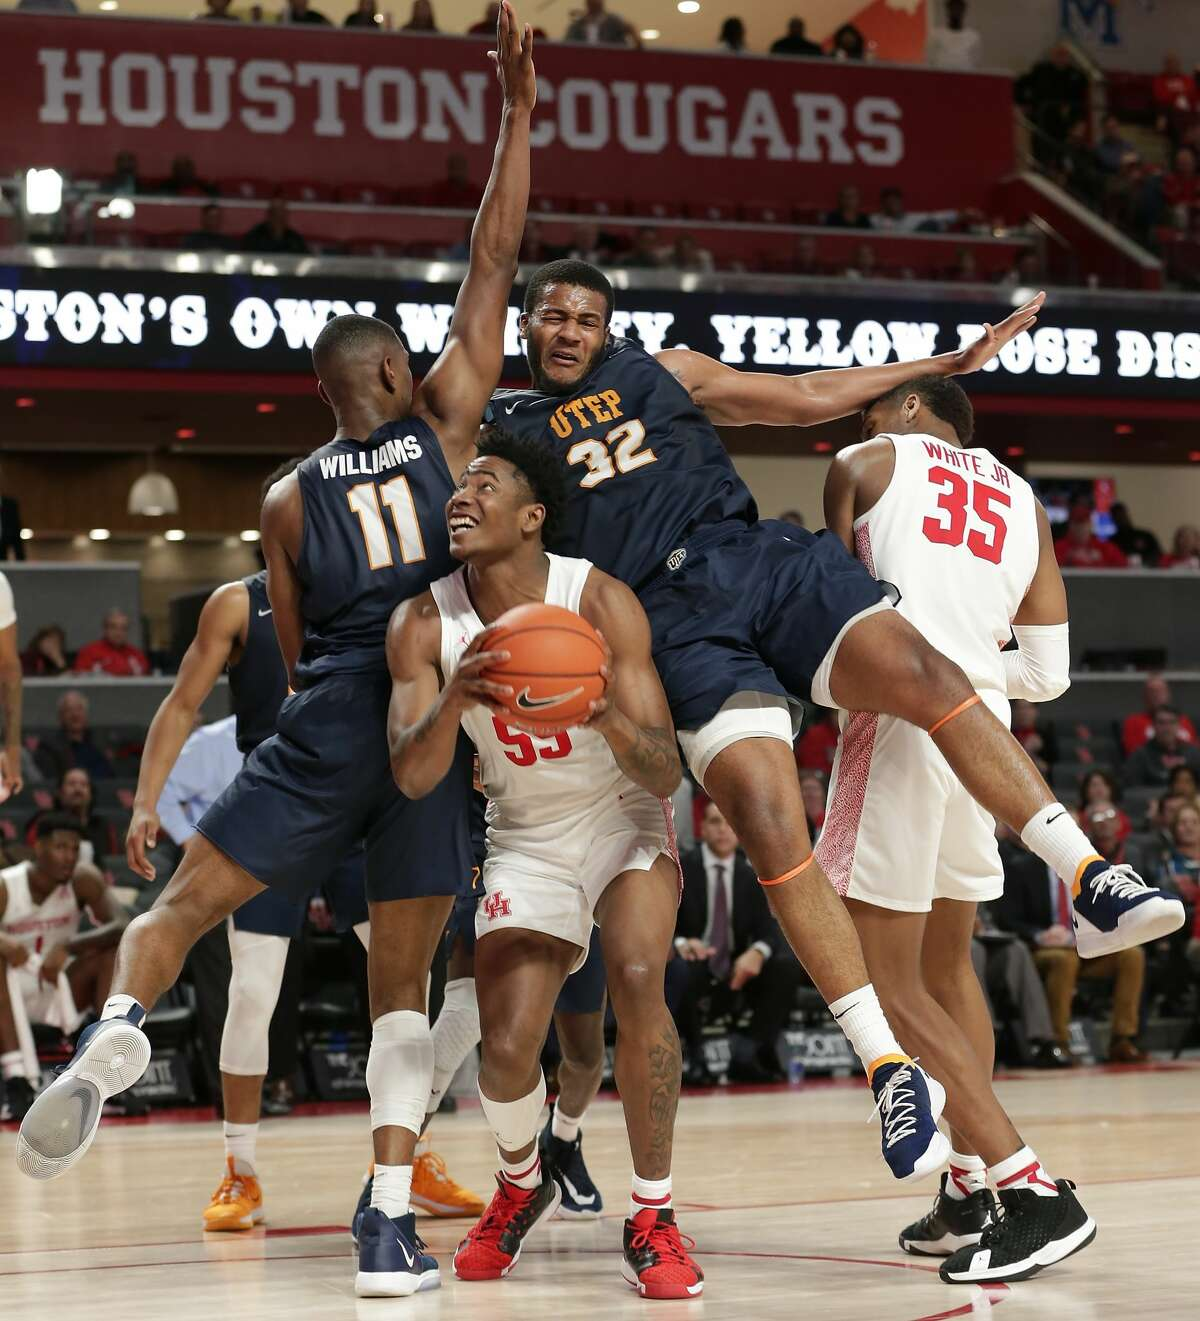 Houston center Brison Gresham (55) tries to push up against UTEP forward Bryson Williams (11) and forward Efe Odigie (32) as they fall on him going for the rebound during the second half of their game Thursday, Dec. 19, 2019 in Houston, TX.